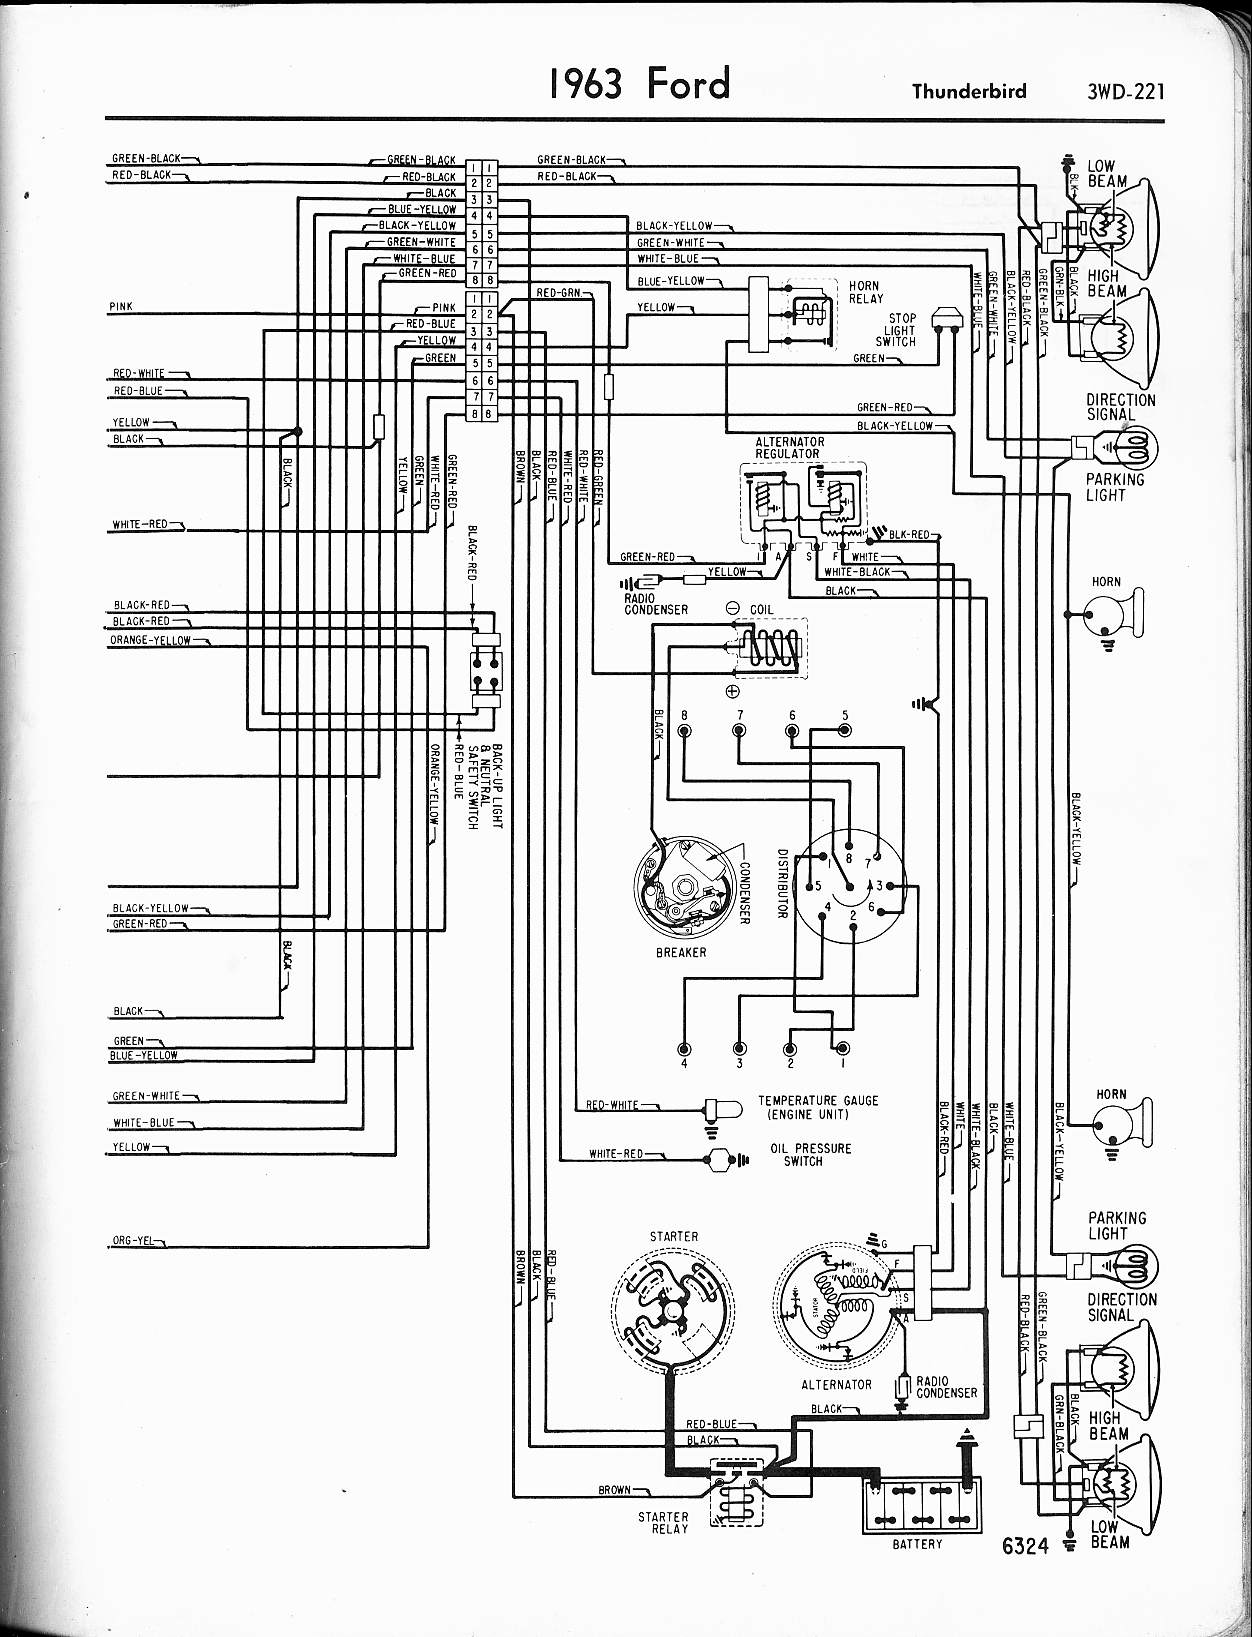 57 65 Ford Wiring Diagrams 1970 Camaro Diagram Haynes 1963 Thunderbird Right